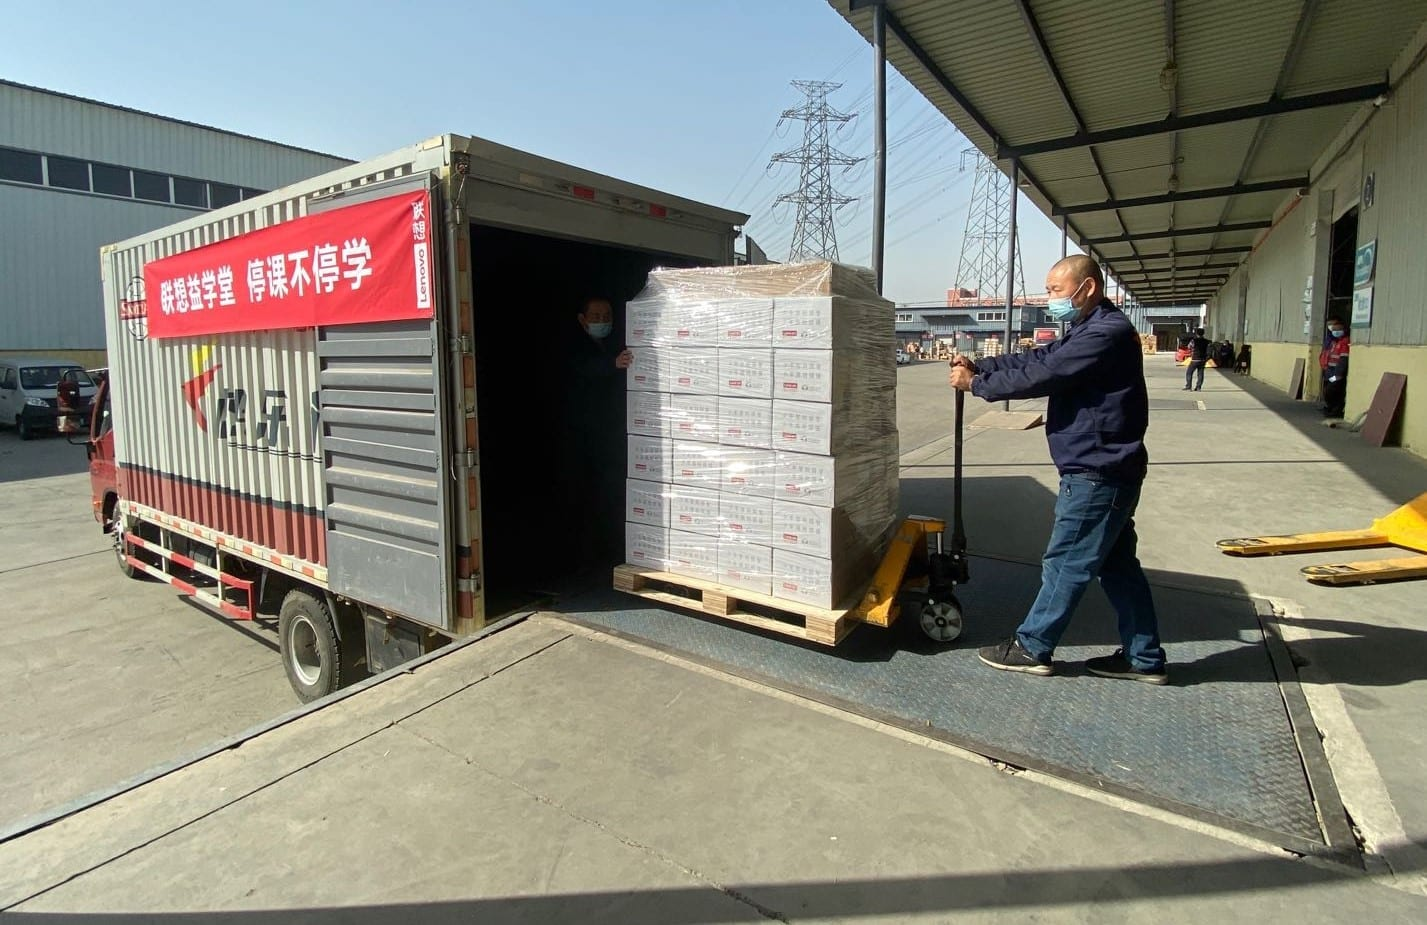 Special packages with tablet, data card, and letter from Yuanqing Yang being loaded for delivery in Hubei Province.